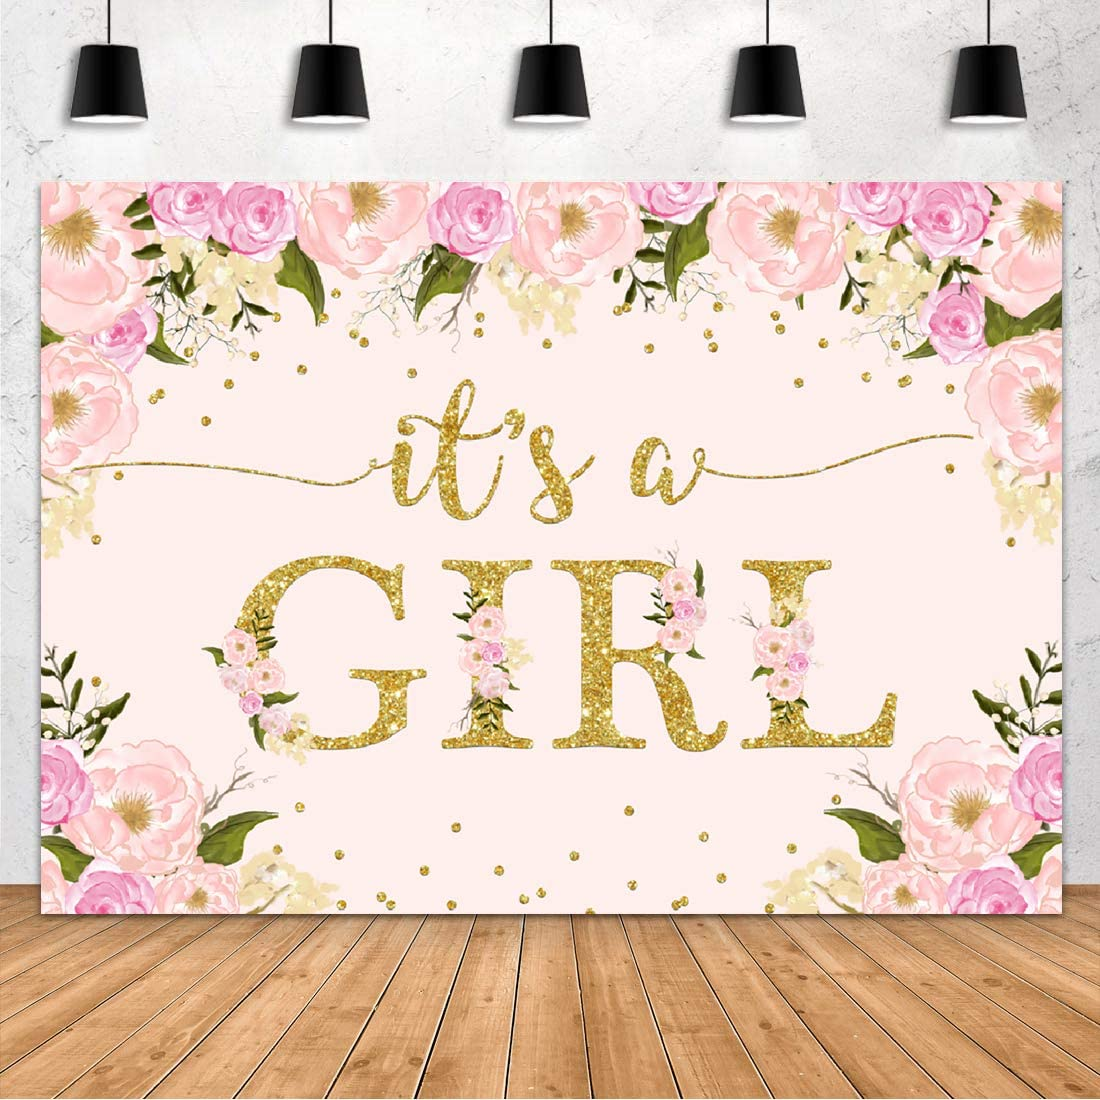 Aperturee It's a Girl Baby Shower Backdrop Watercolor Pink Floral Flowers Golden Dots Photography Background 7x5ft Flower Baby Girl Party Decoration Photo Booth Studio Photoshoot Props Banner Supplies